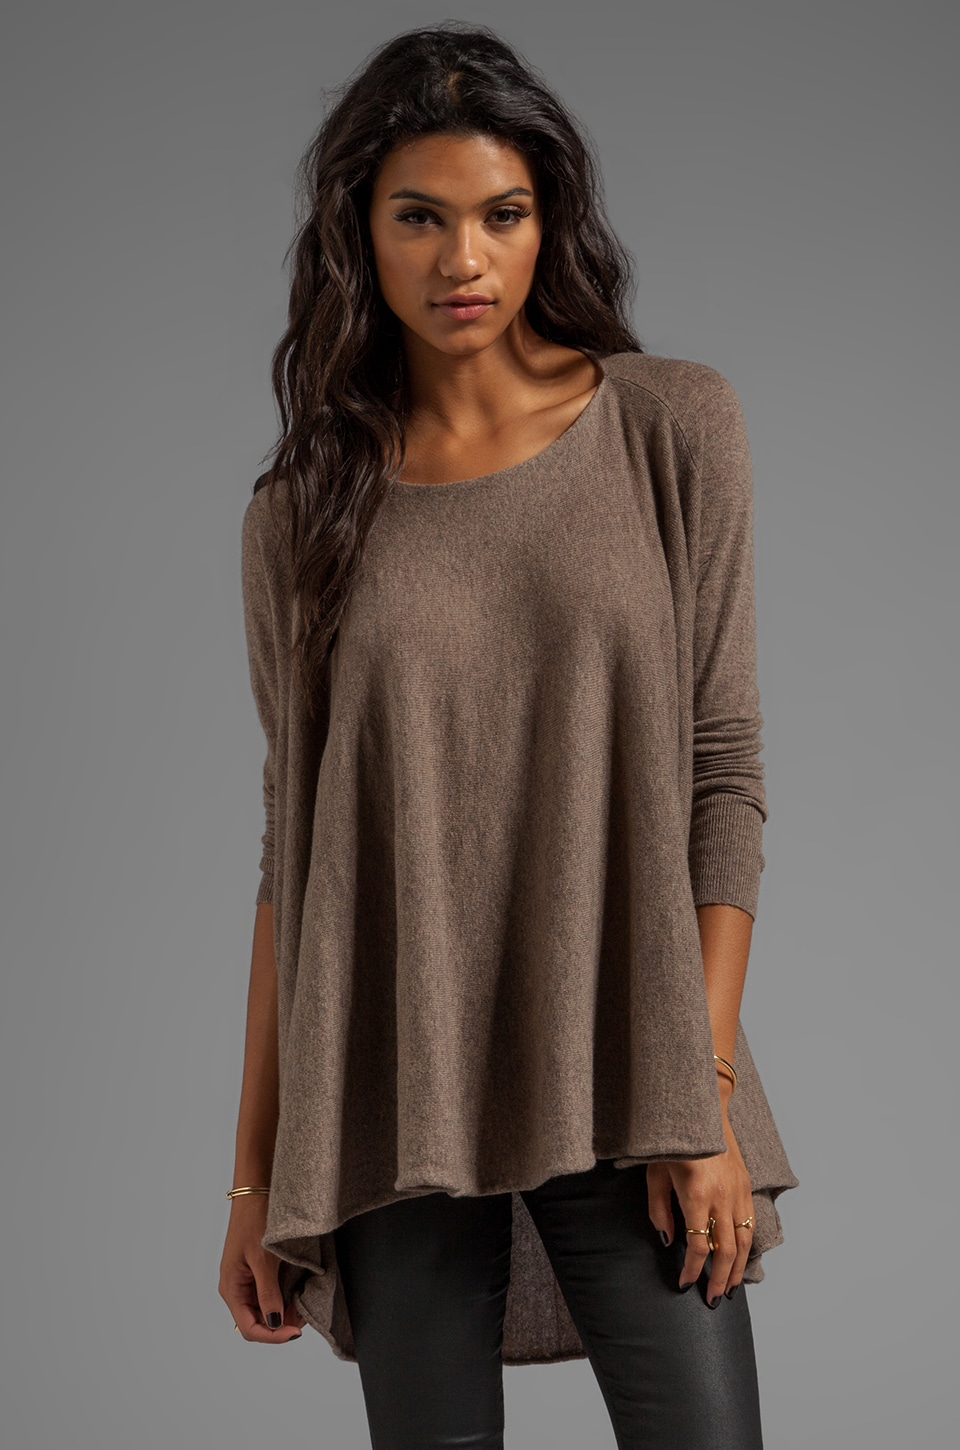 Autumn Cashmere Convertible Flare Tunic/Drape Cardigan in Rye